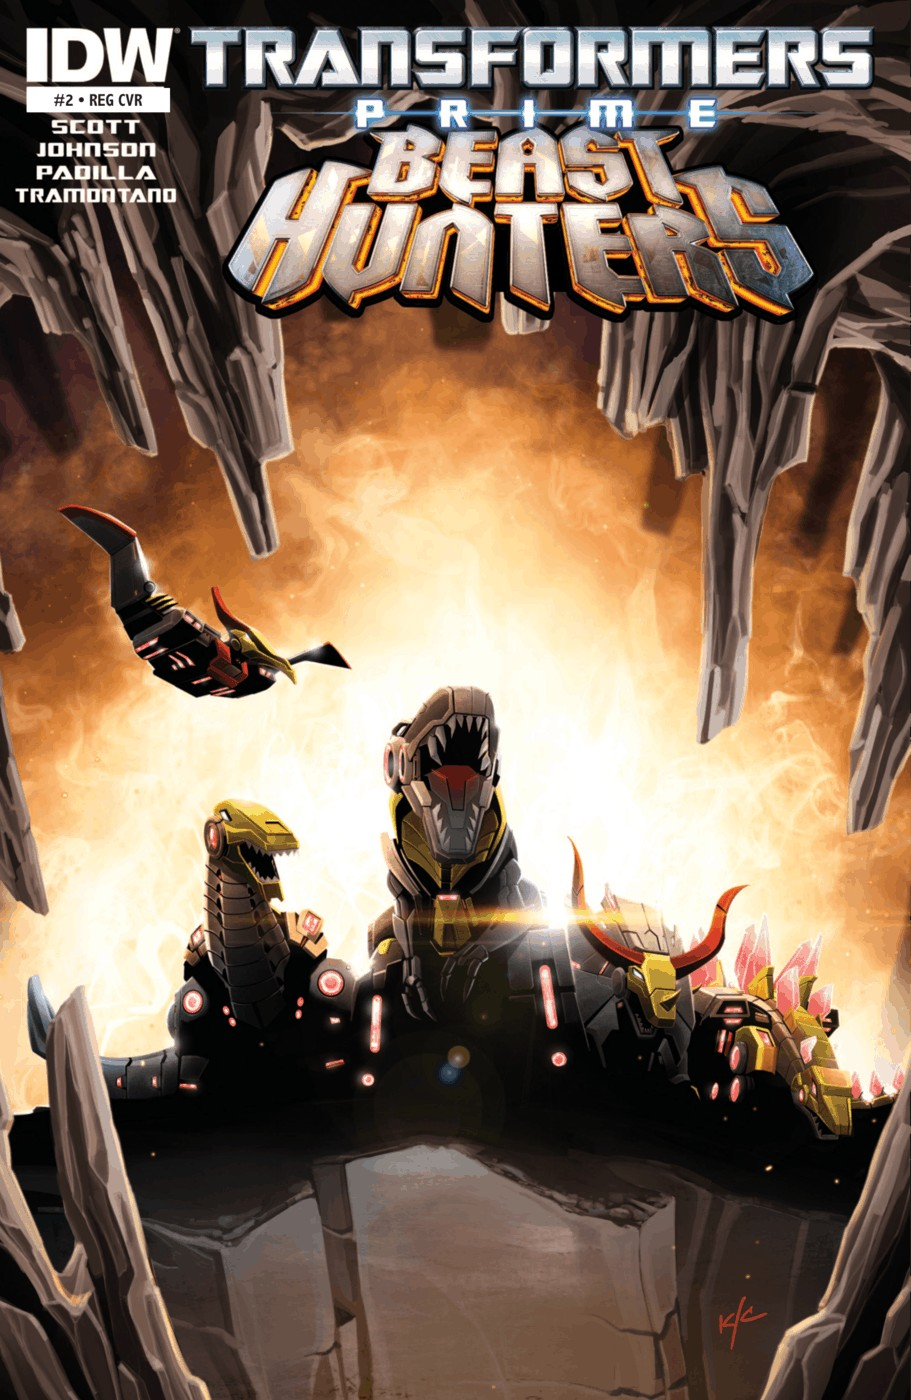 Read online Transformers Prime: Beast Hunters comic -  Issue #2 - 1